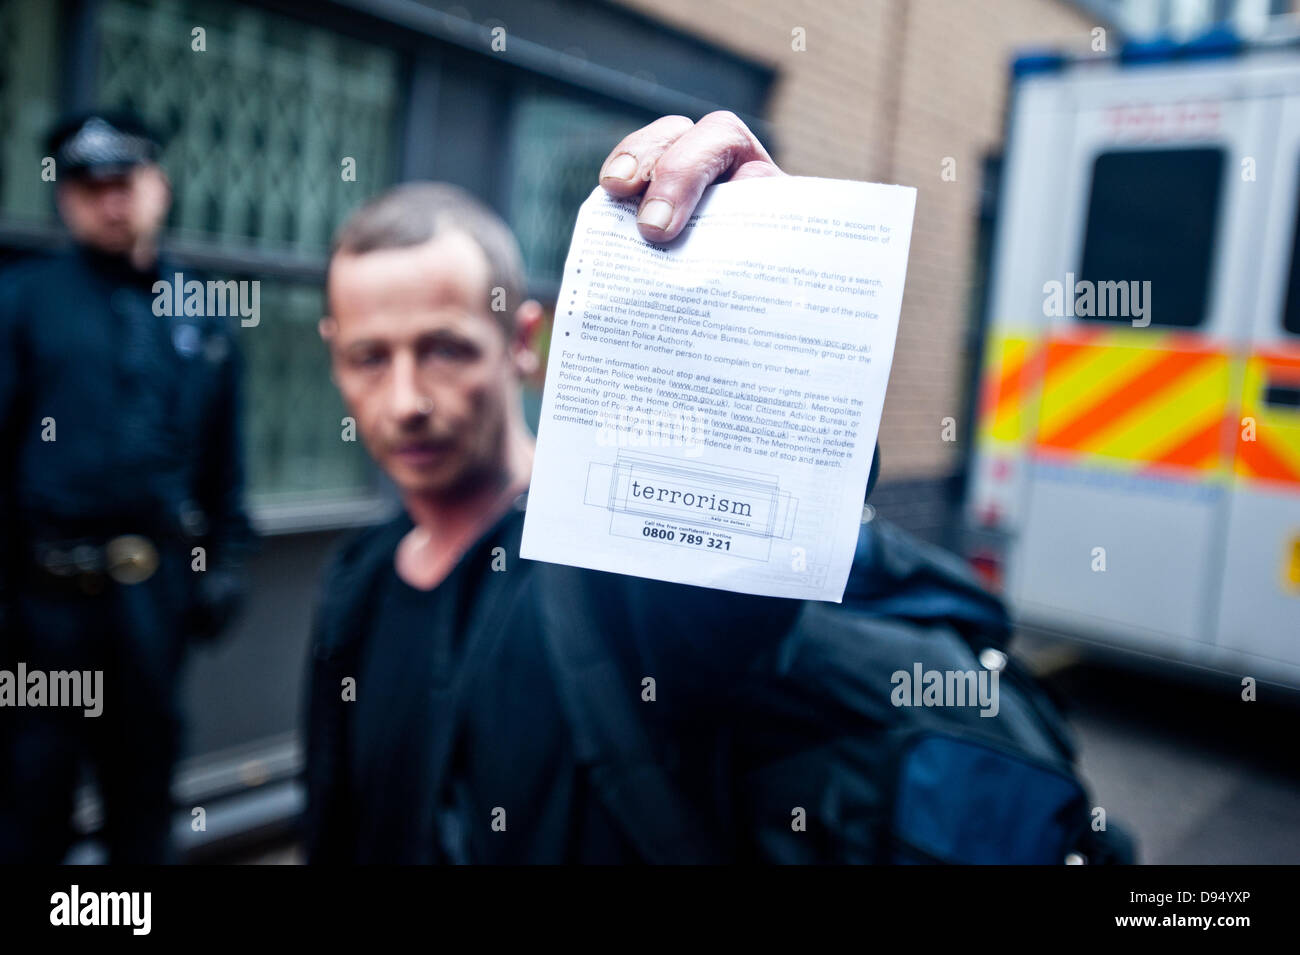 London, UK – 11 June 2013: a Stop G8 protester holds a 'Stop and search' notice for terrorism after being evicted - Stock Image